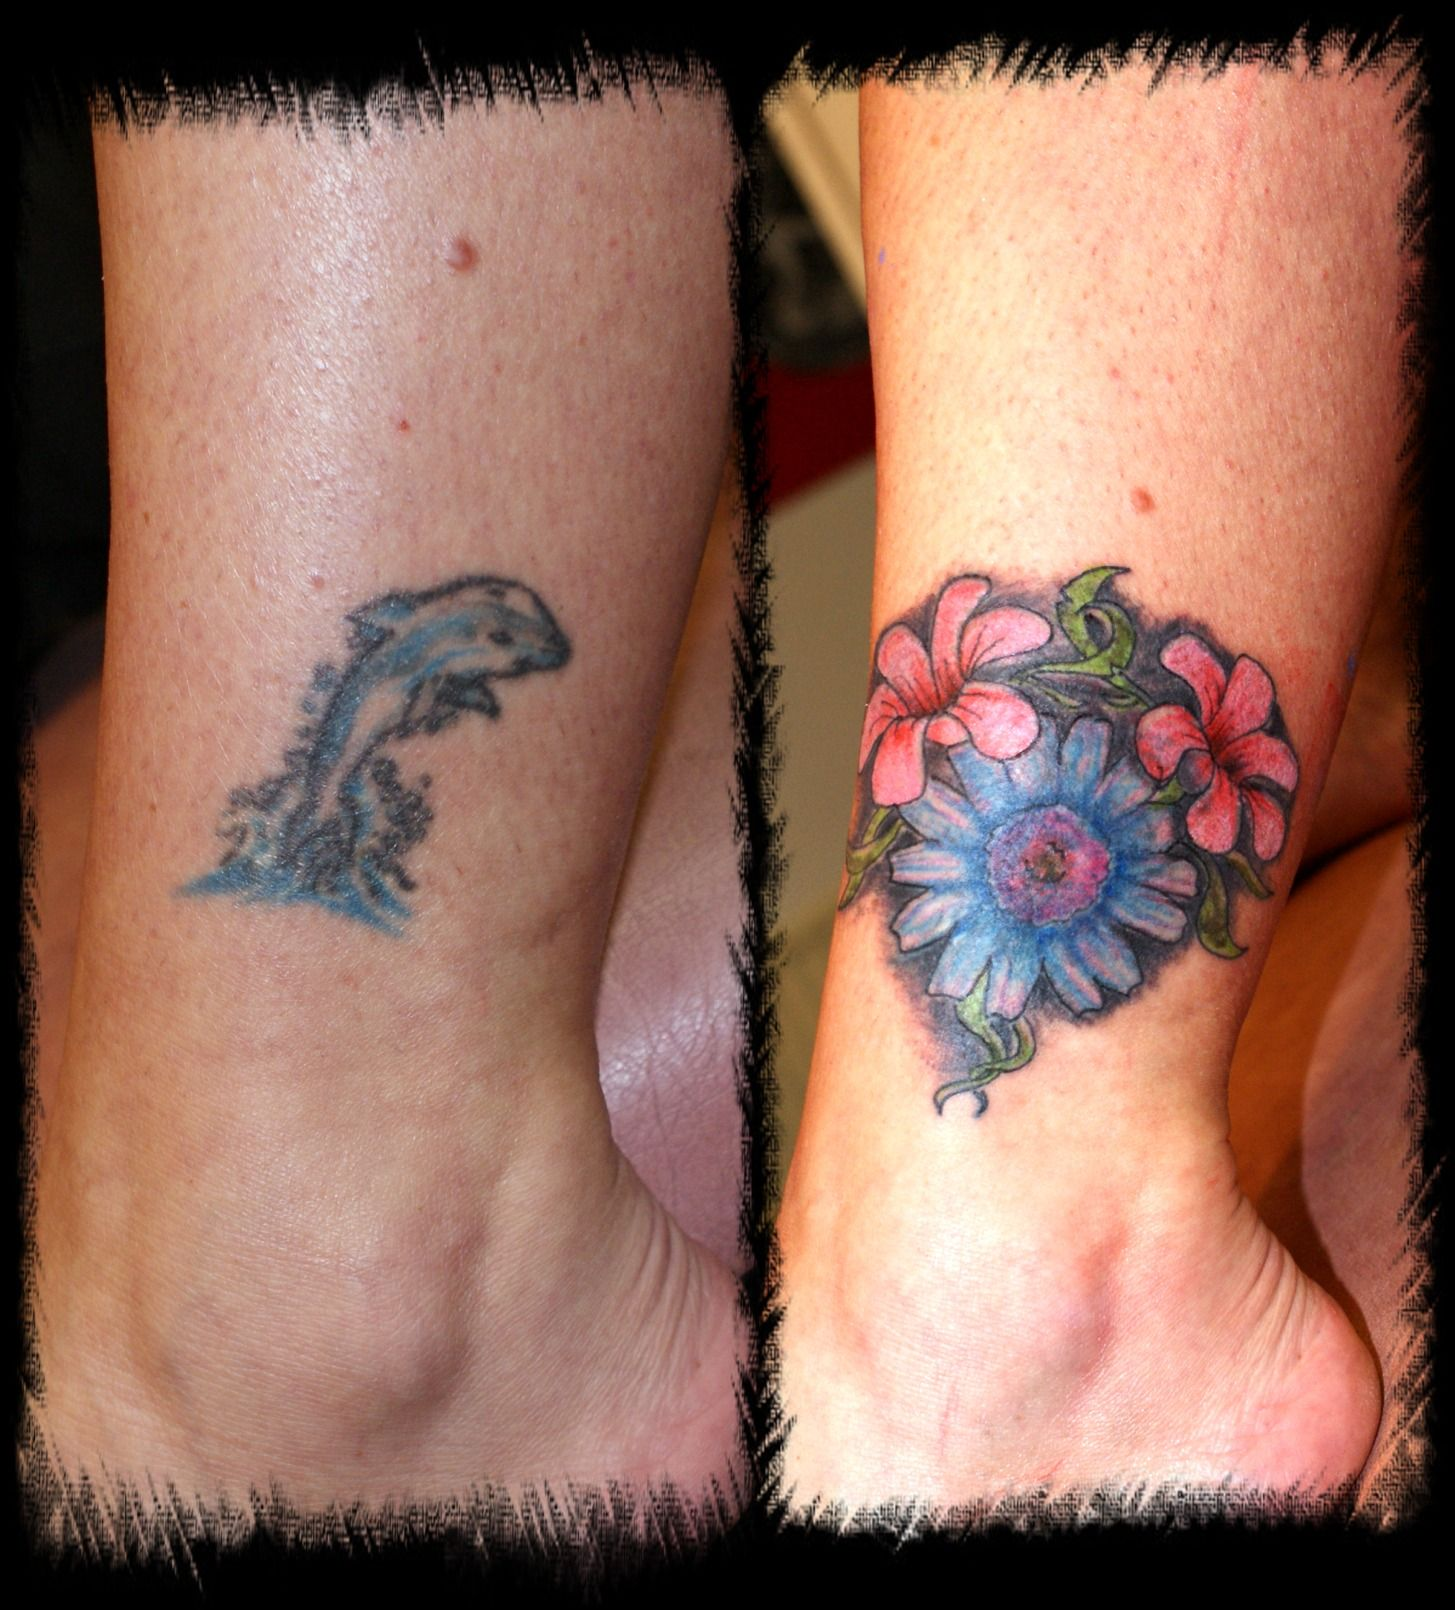 Ankle Cover Up Tattoos Google Search Cover Up Tattoos Cover Up Tattoos For Women Up Tattoos